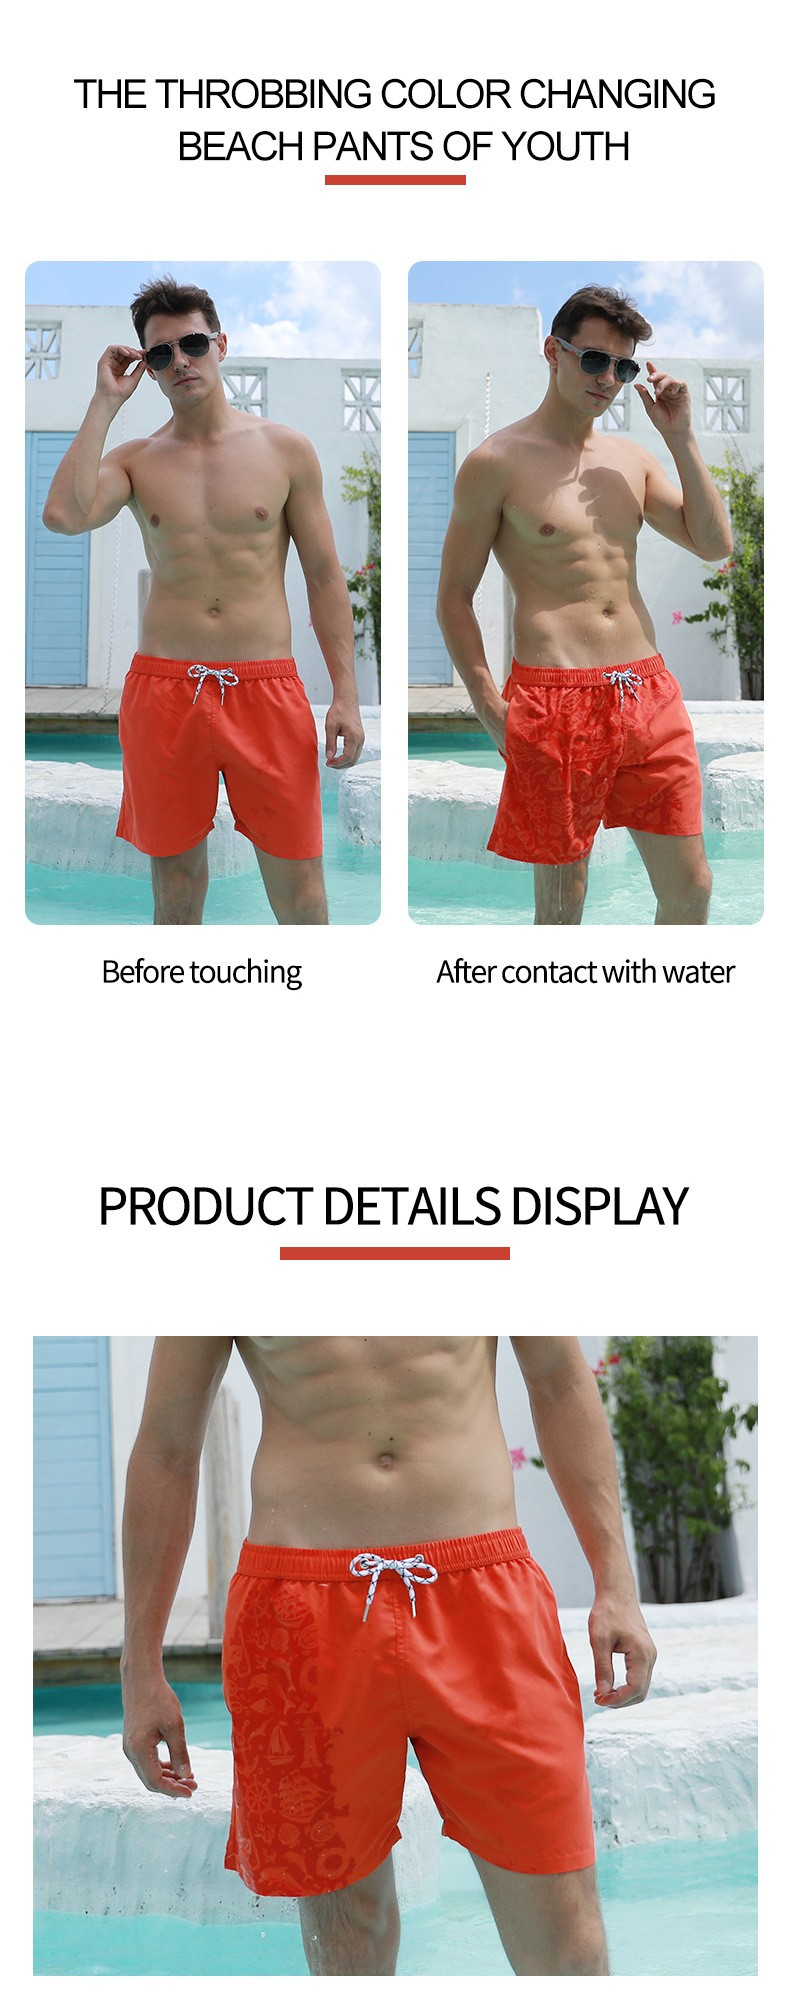 Large Size Quarter-free Short Pants Beach Pants In The Water Flowers Color Changing Magic Print Beach Pants Men's Swimming Trunks - Anchor Purple S